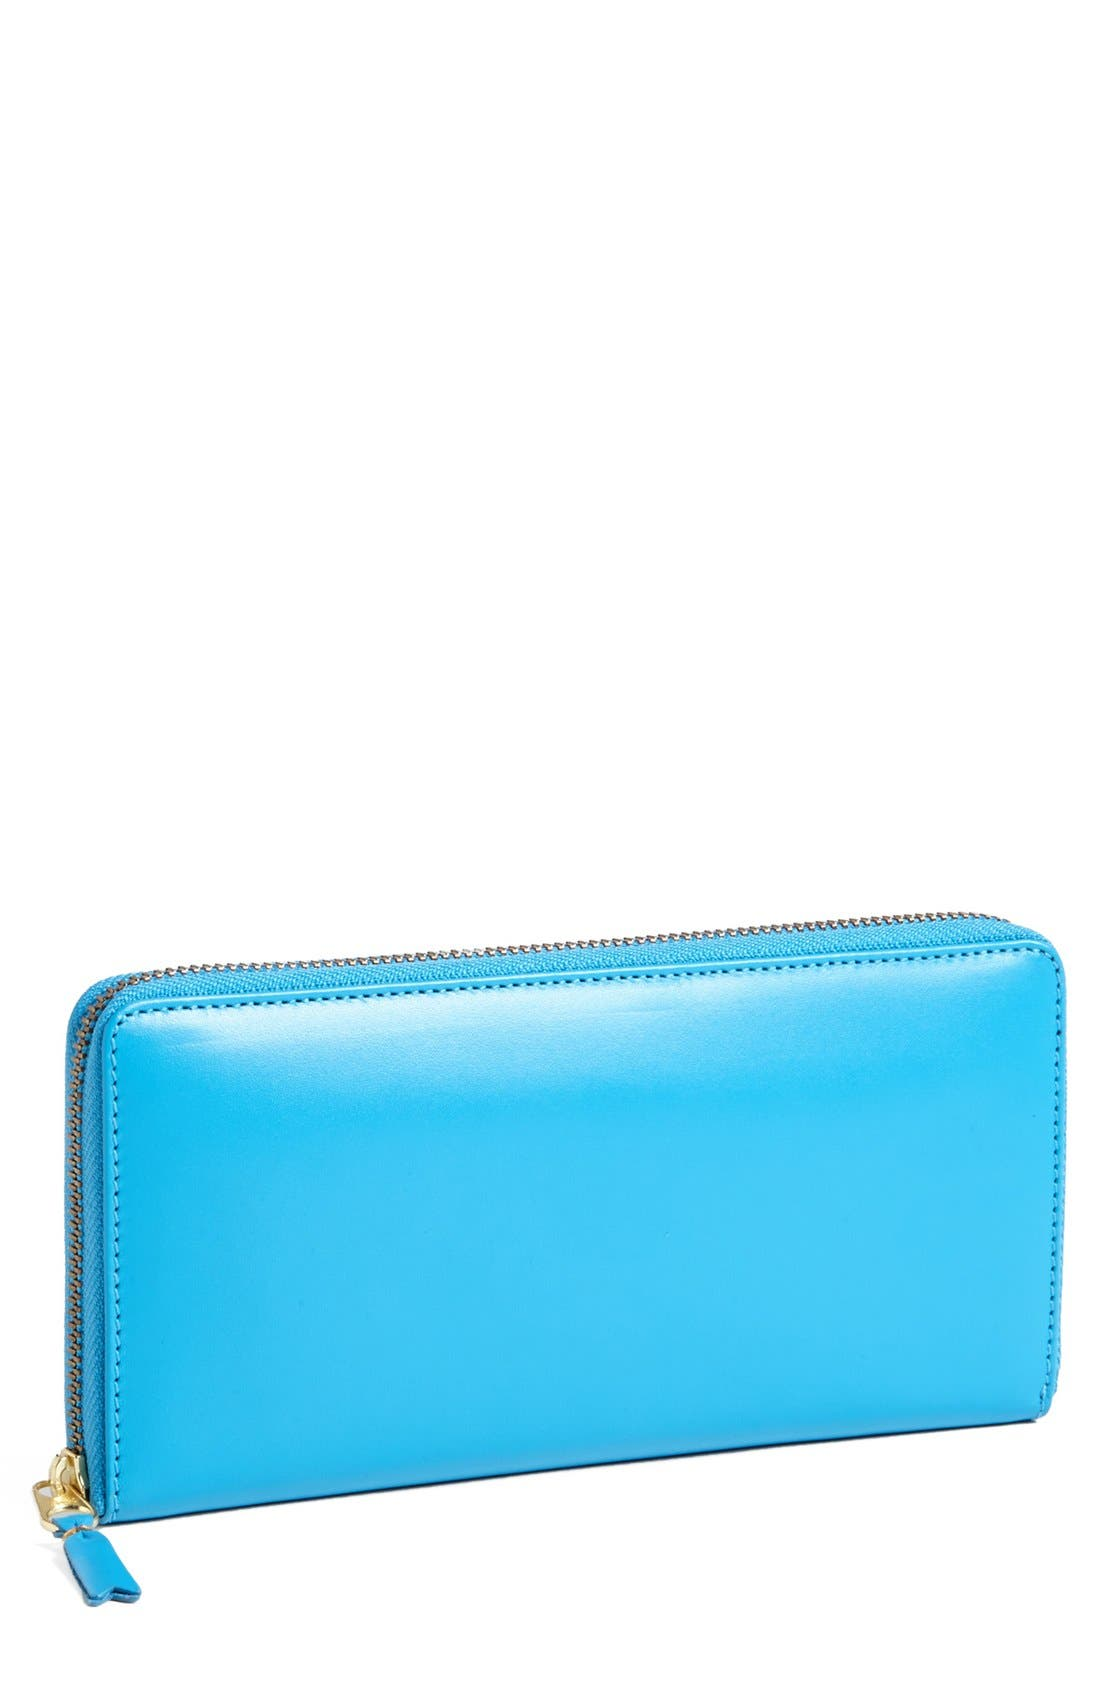 COMME DES GARÇONS Continental Long Wallet, Main, color, BLUE